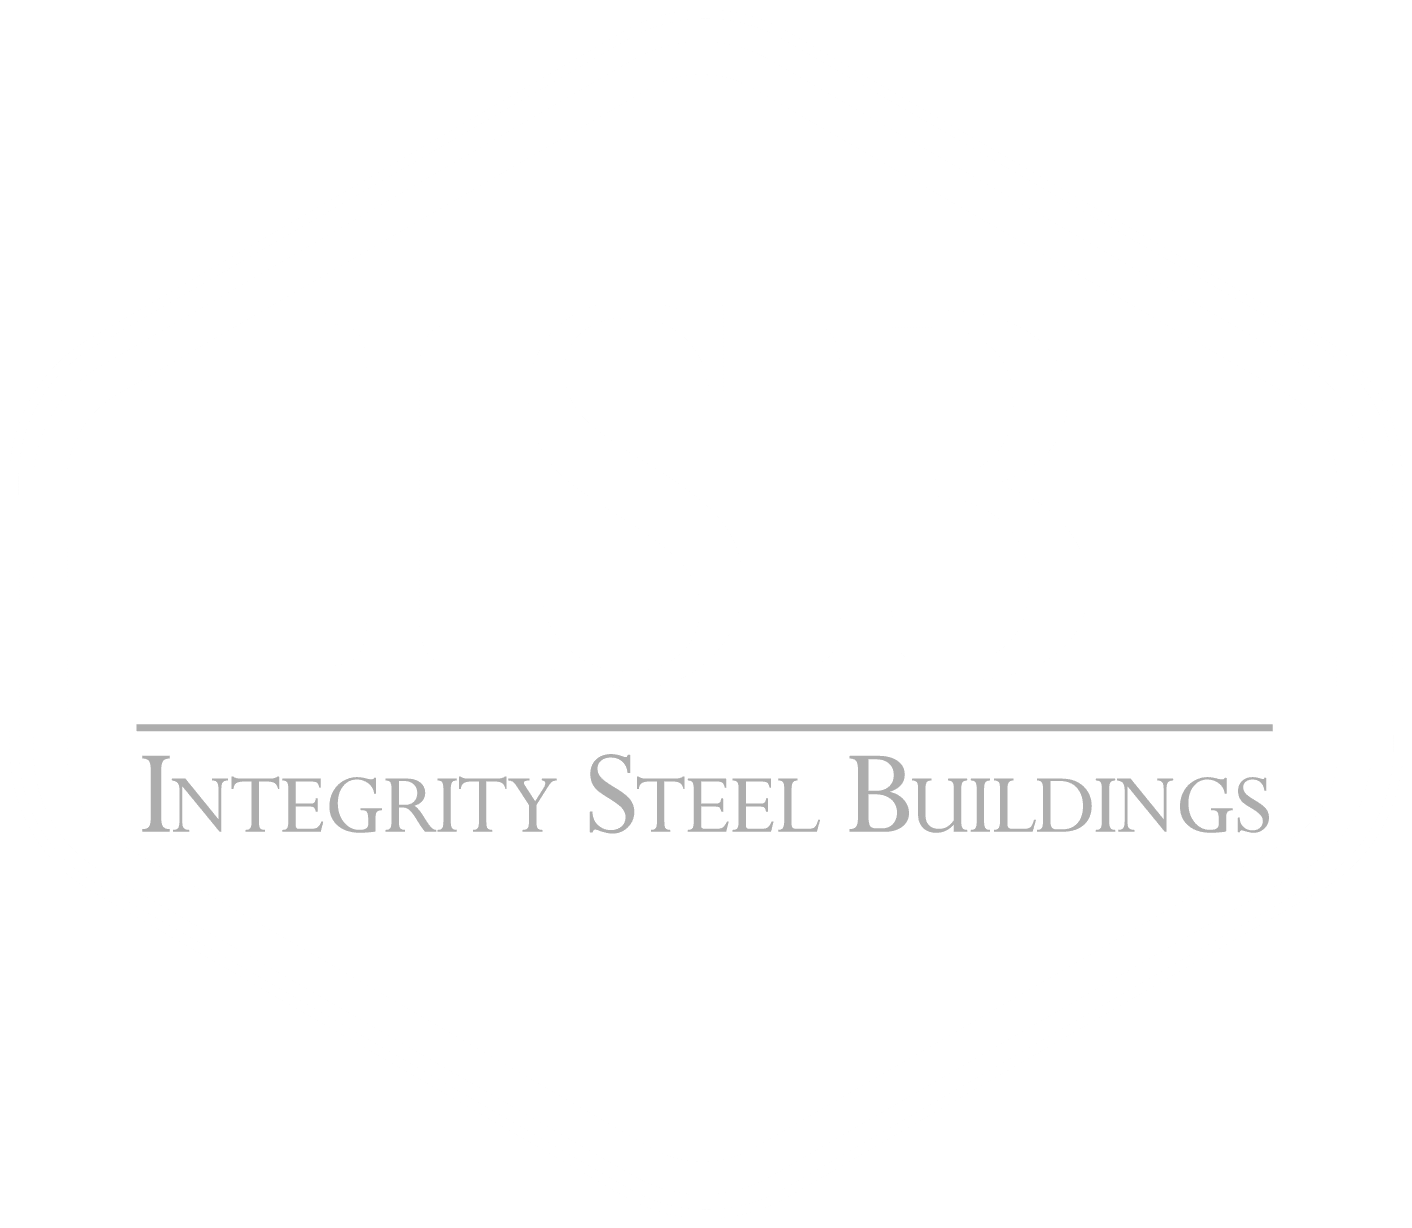 Integrity Steel Buildings